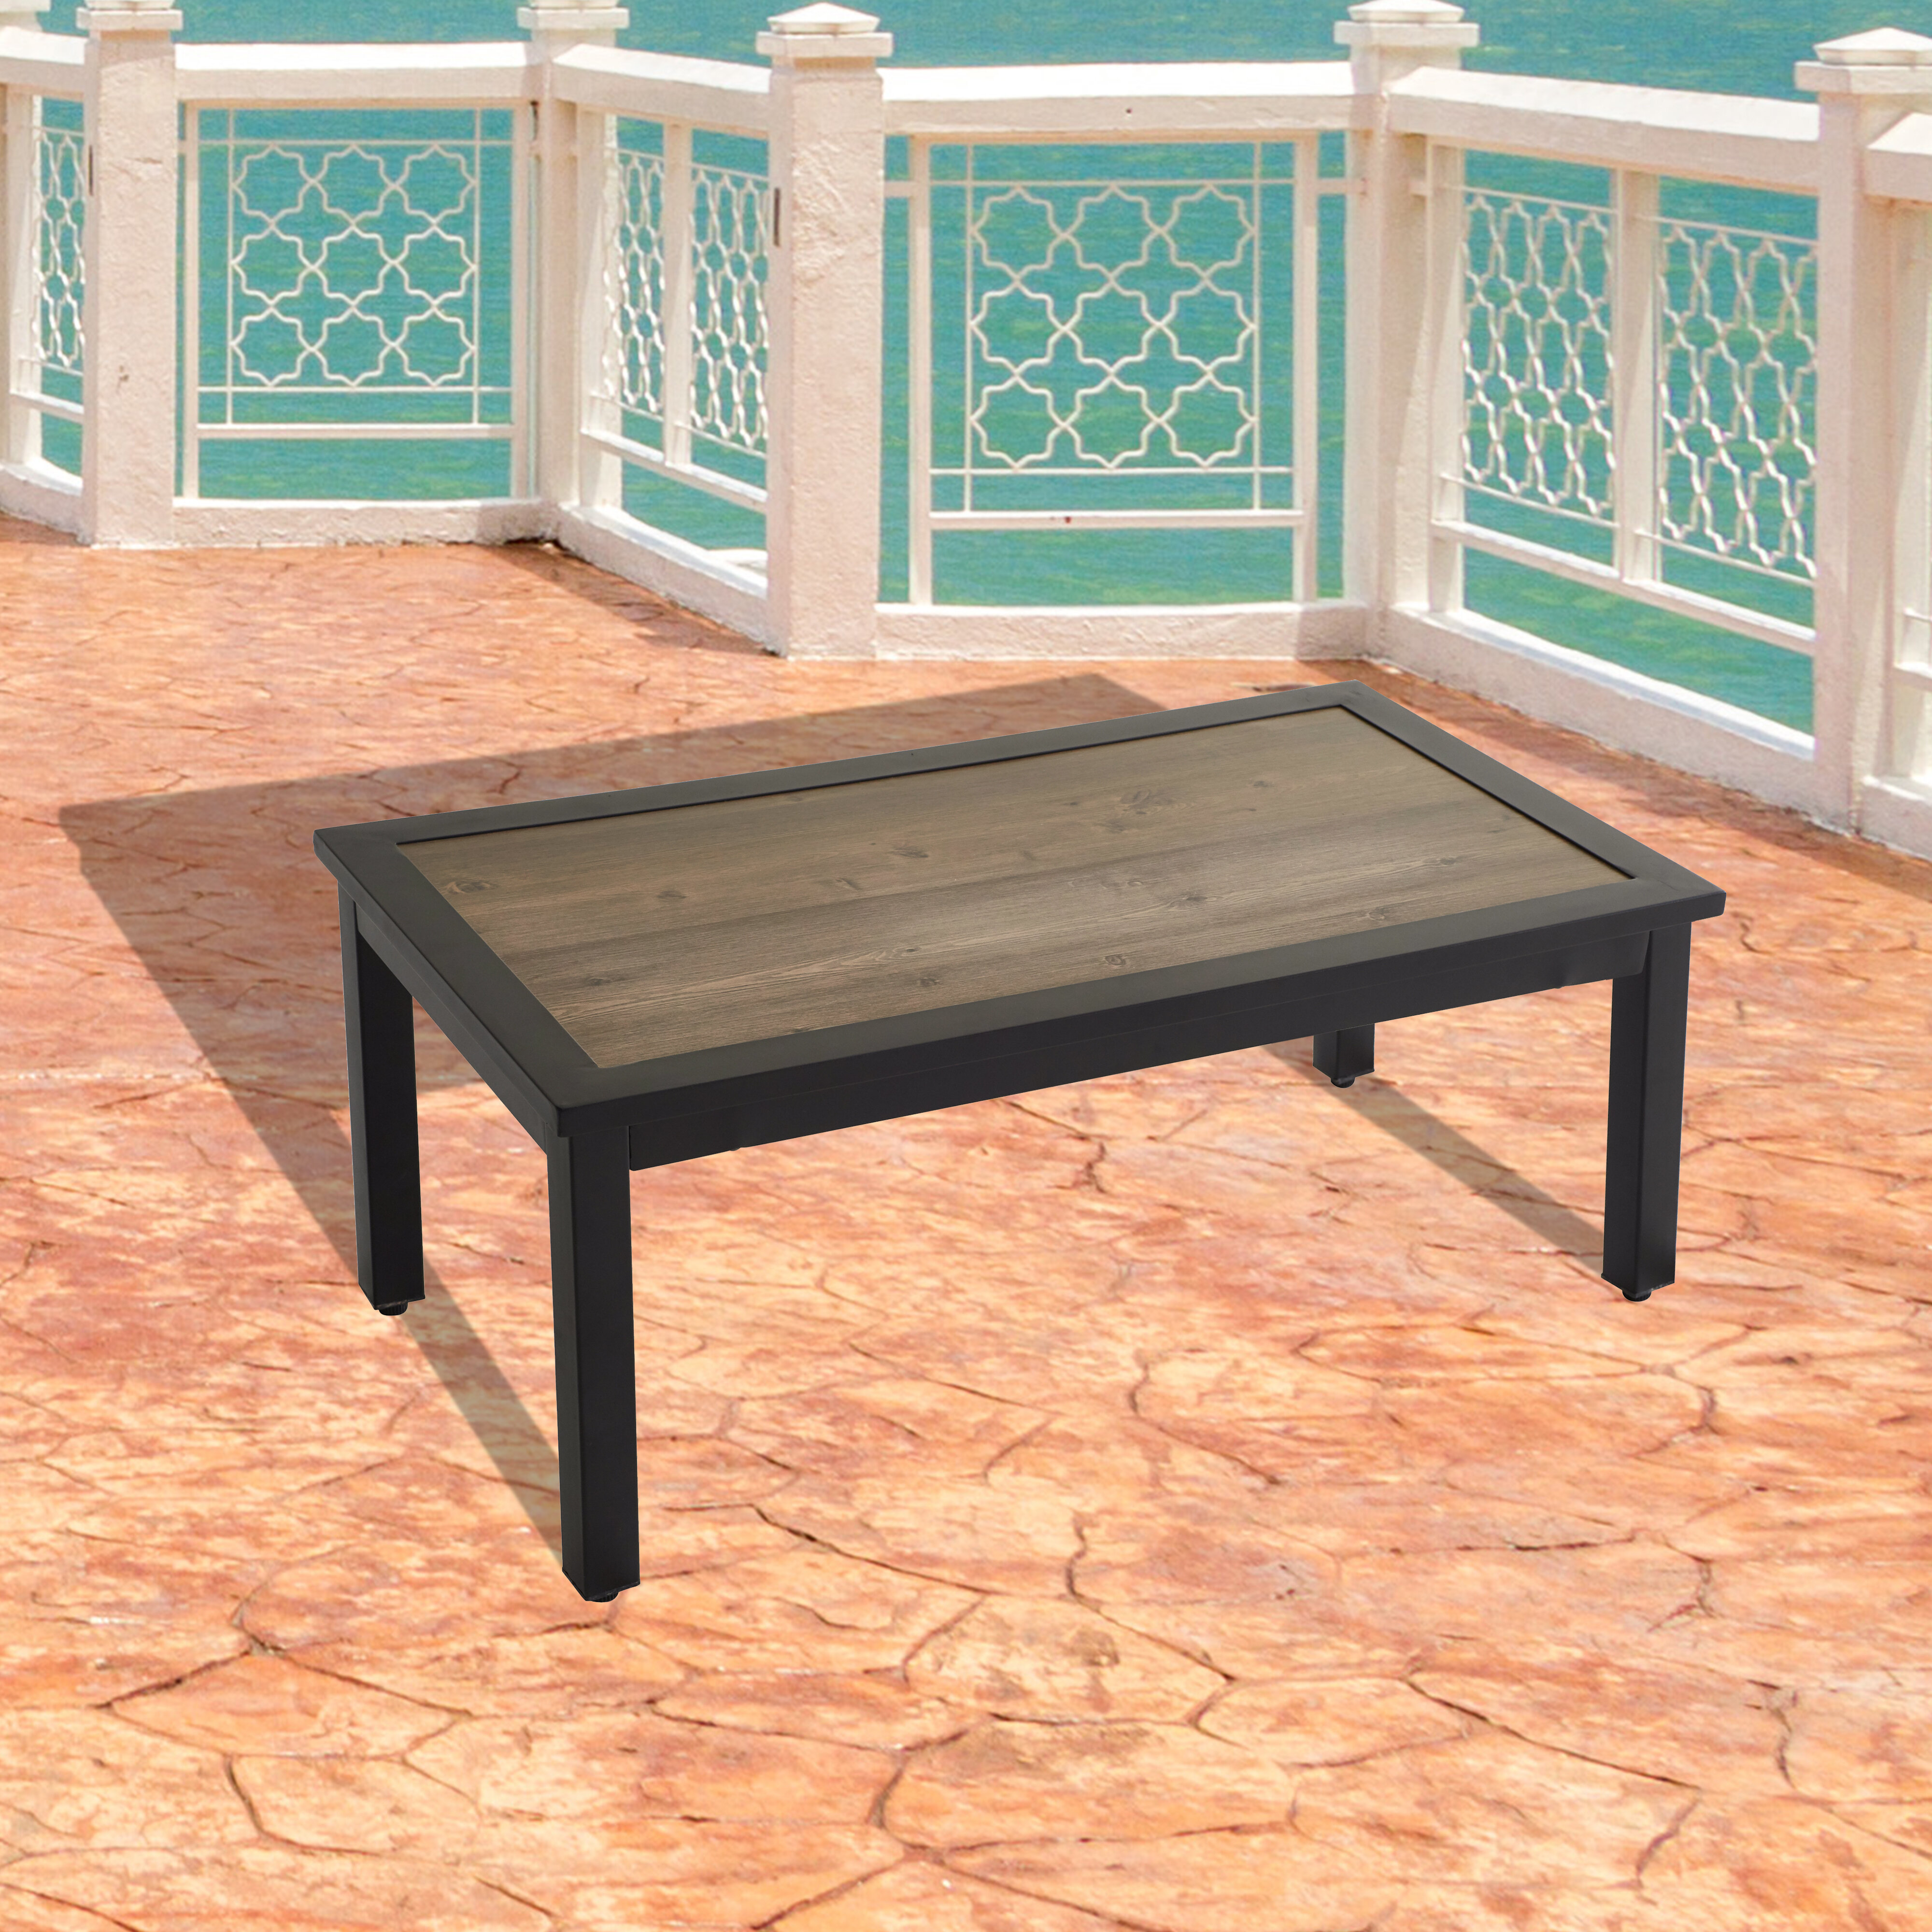 Traditional Patio Coffee Tables You Ll Love In 2021 Wayfair